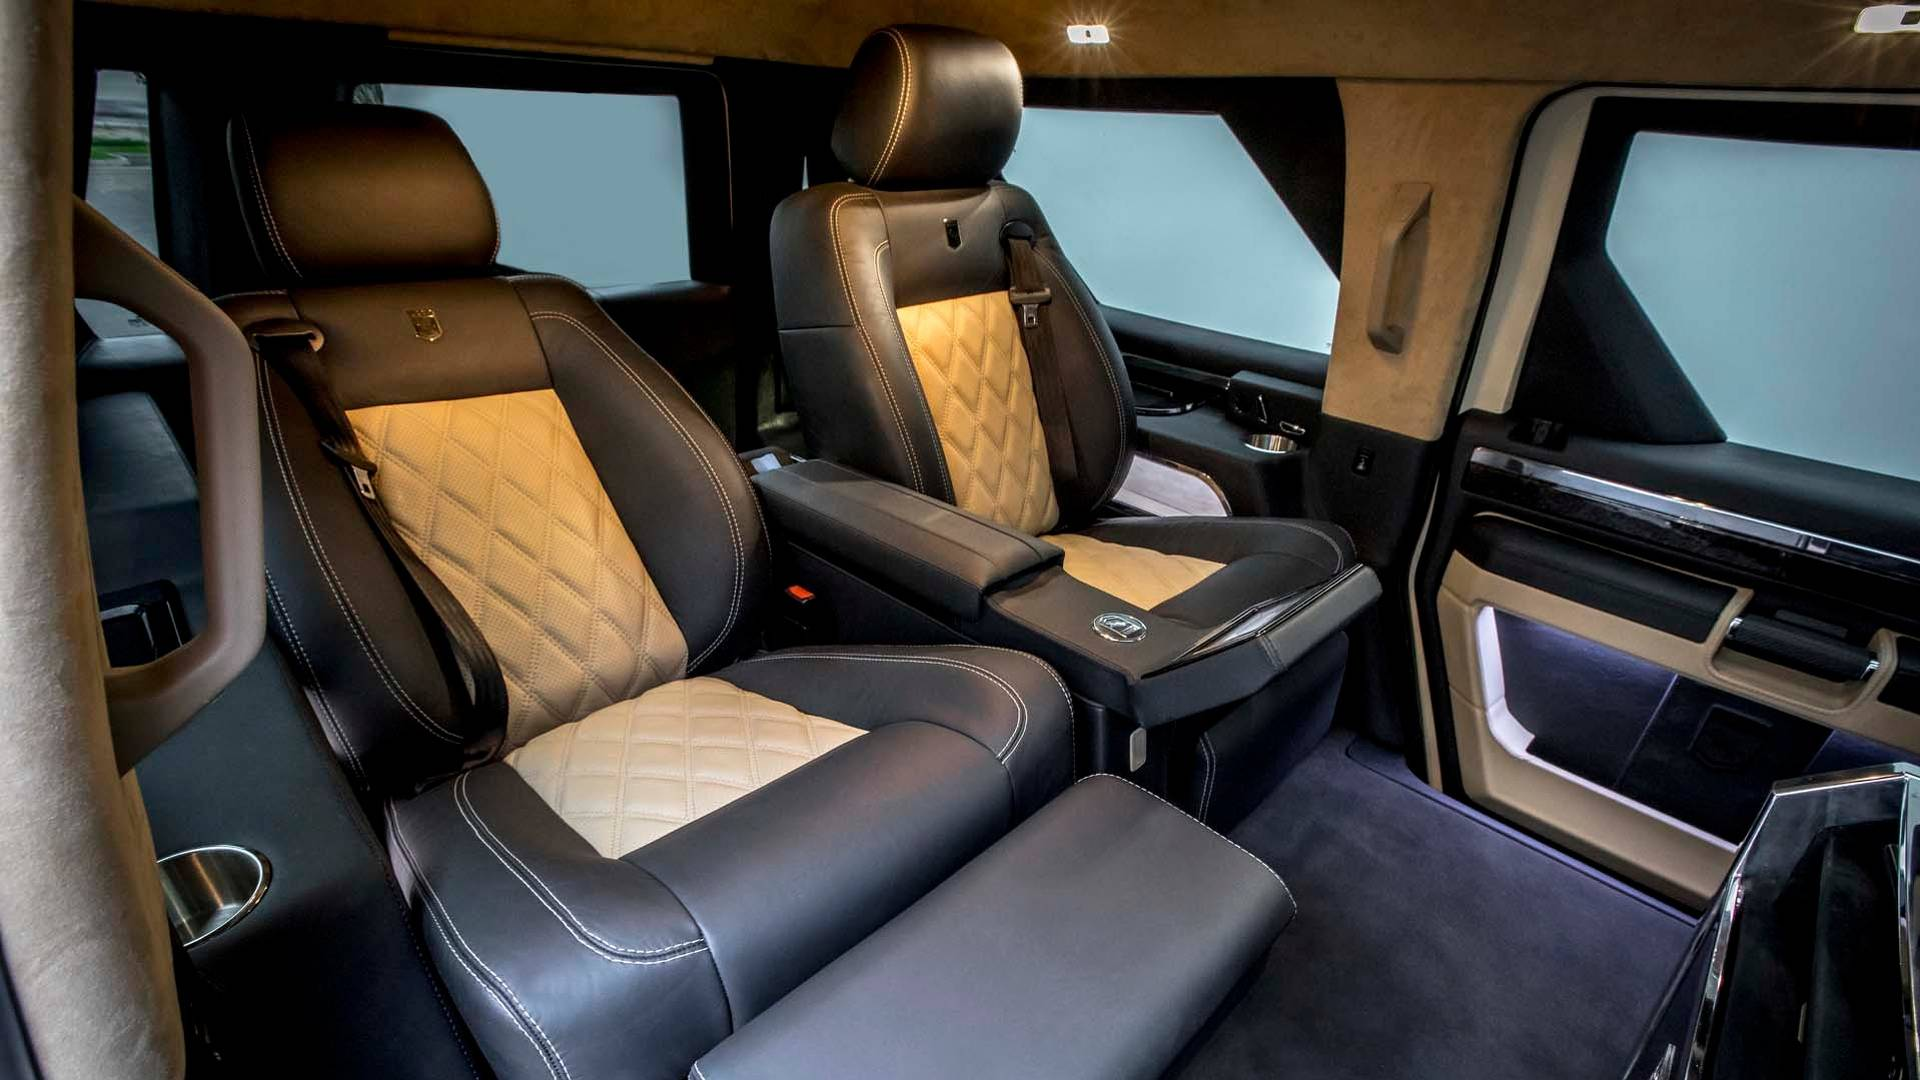 Rhino Gx Executive Gets First Class Entertainment With 40